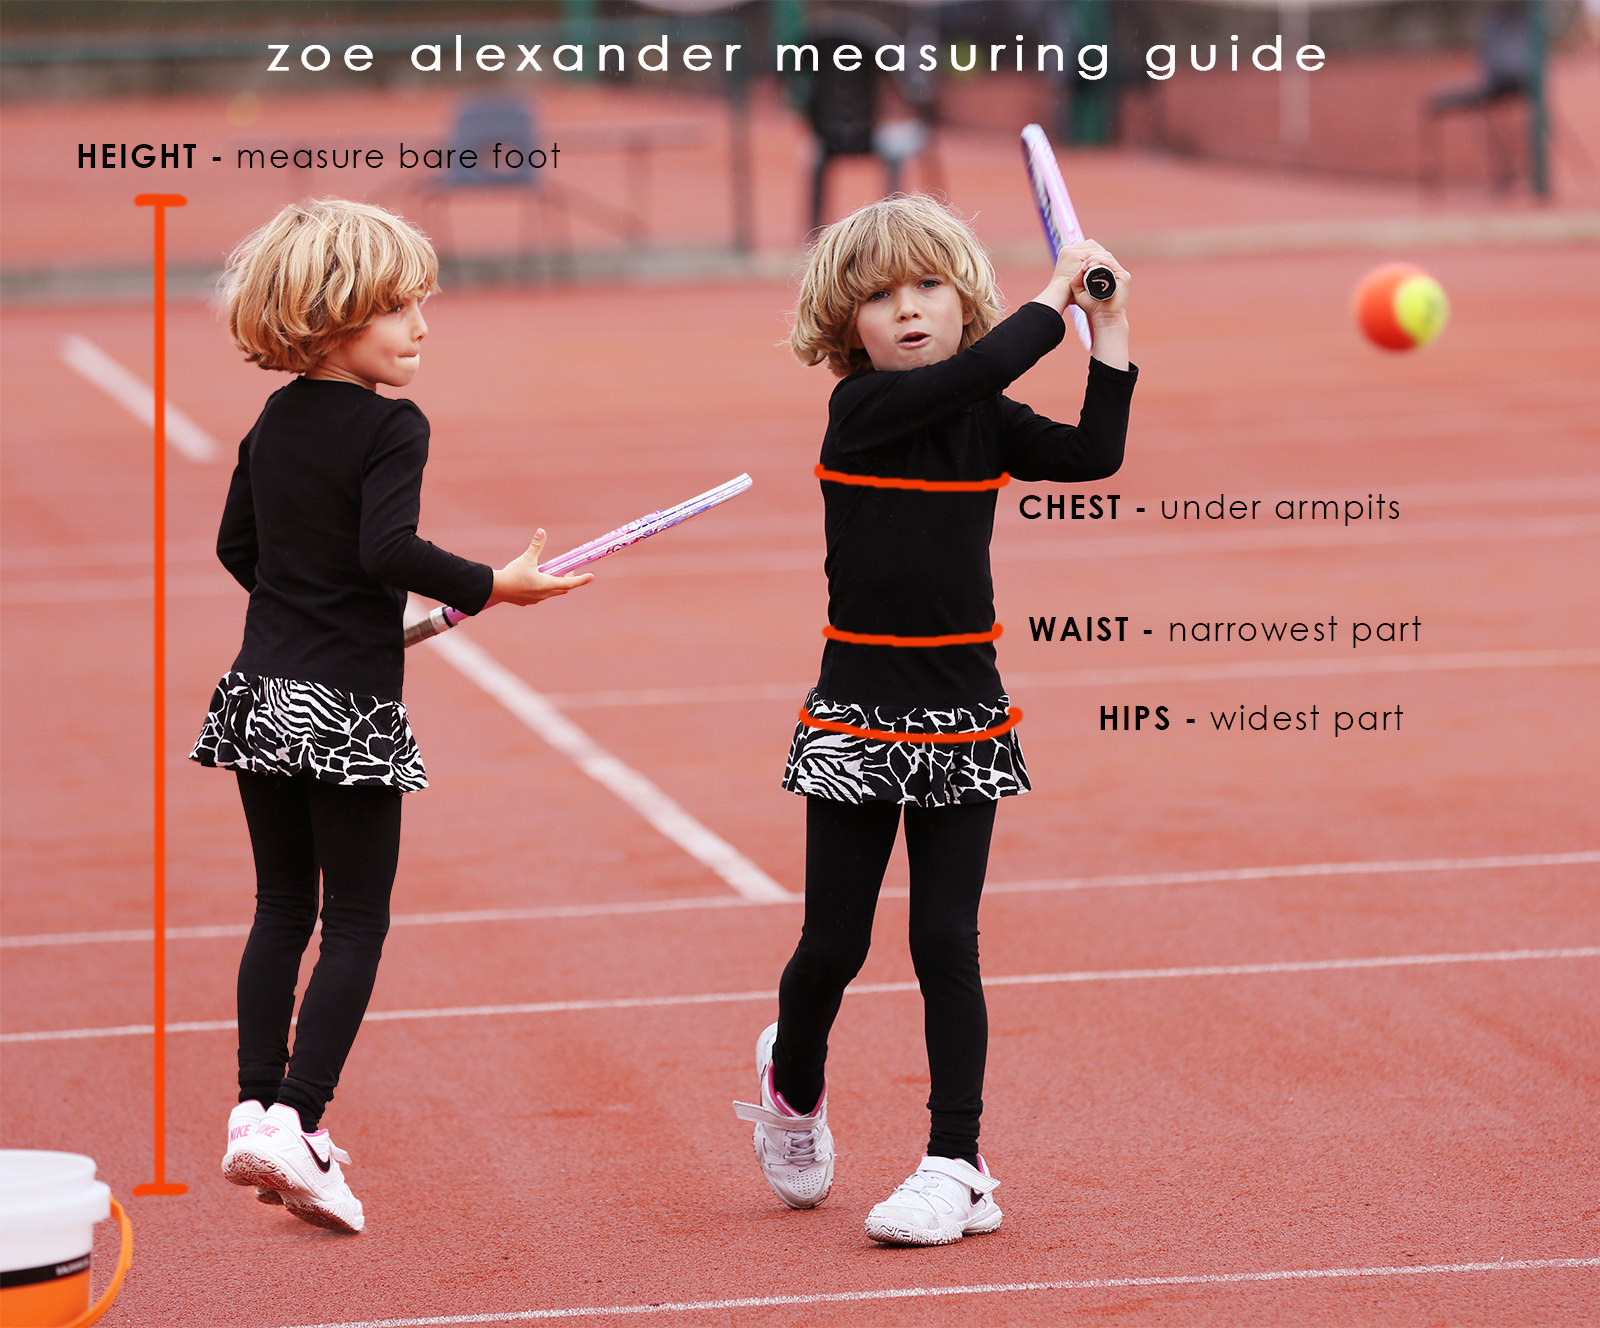 measuring size guide for tennis clothes for girls and boys zoe alexander